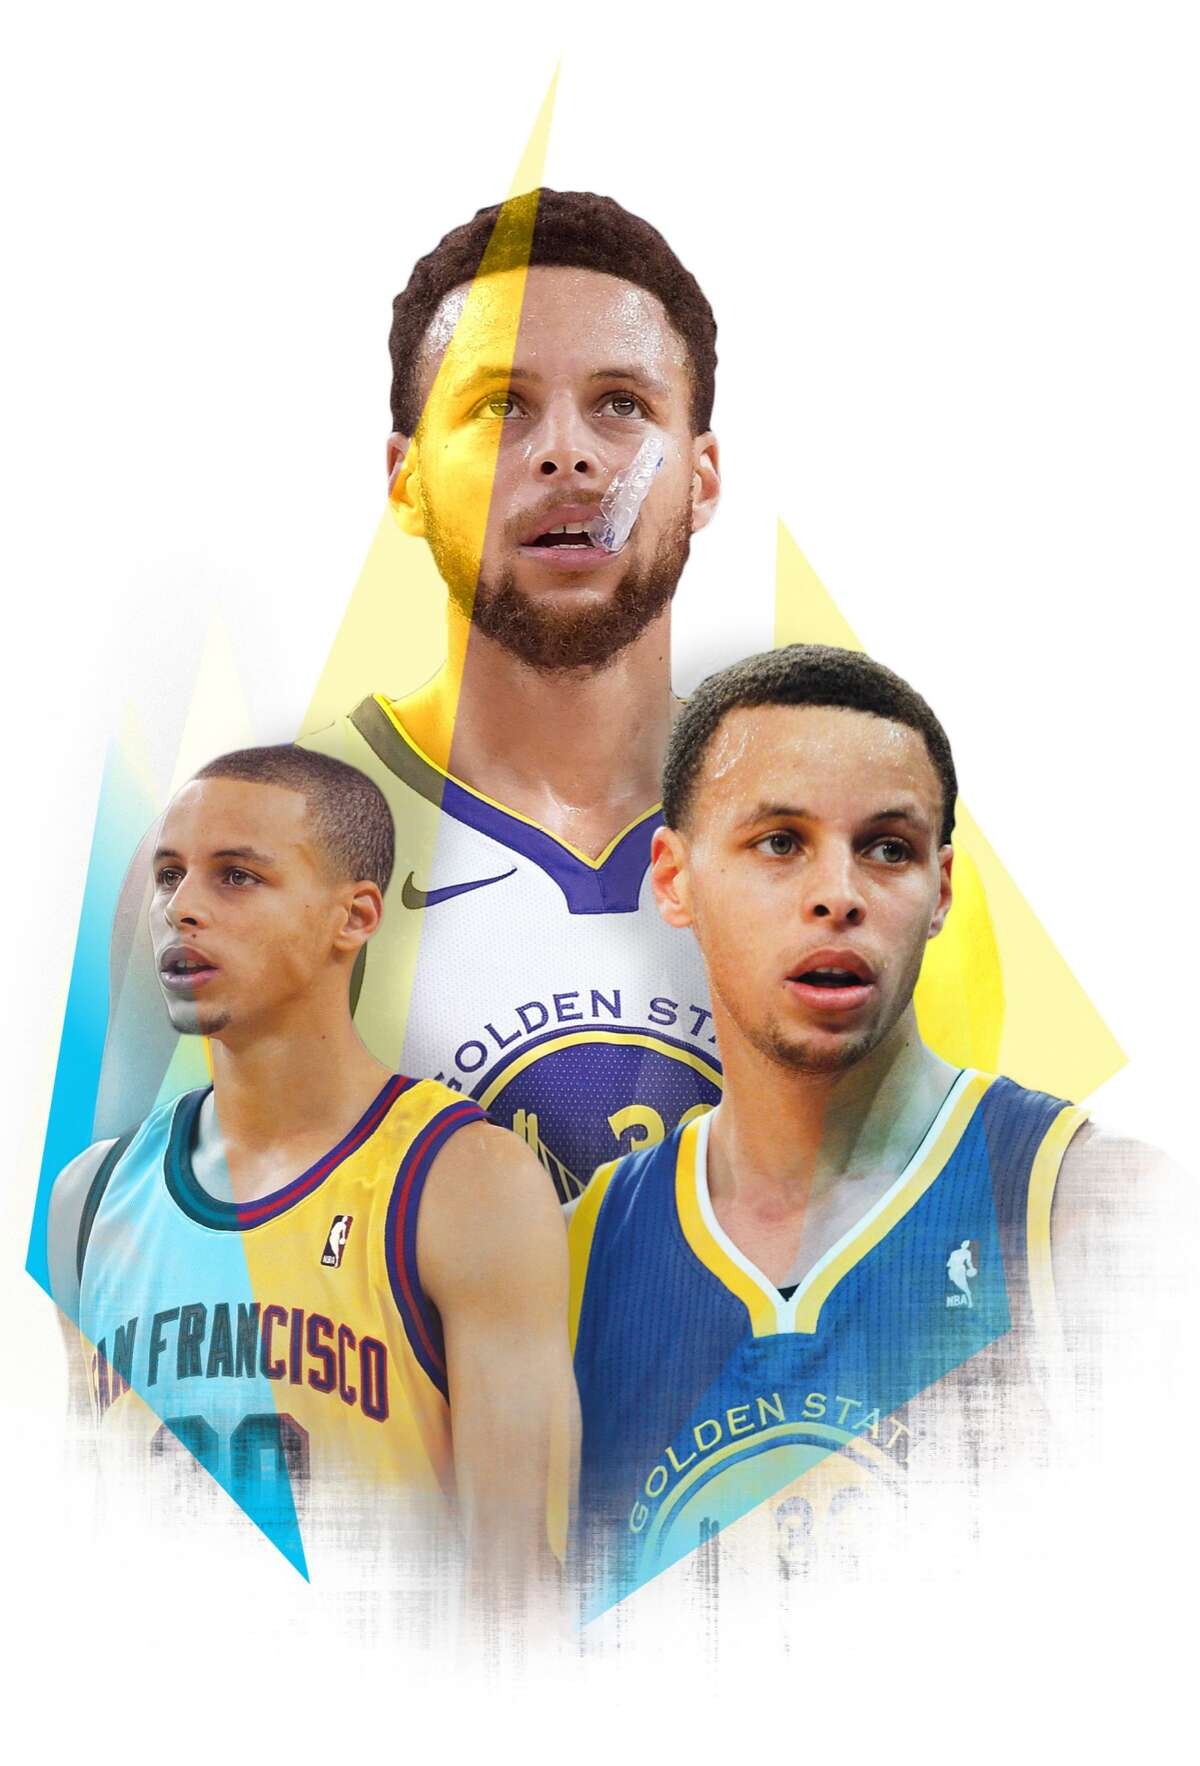 Curry is turning 30 after an extraordinary decade in which he blossomed from a slender, baby-faced prospect at Davidson College into the face of the NBA's most high-profile franchise.